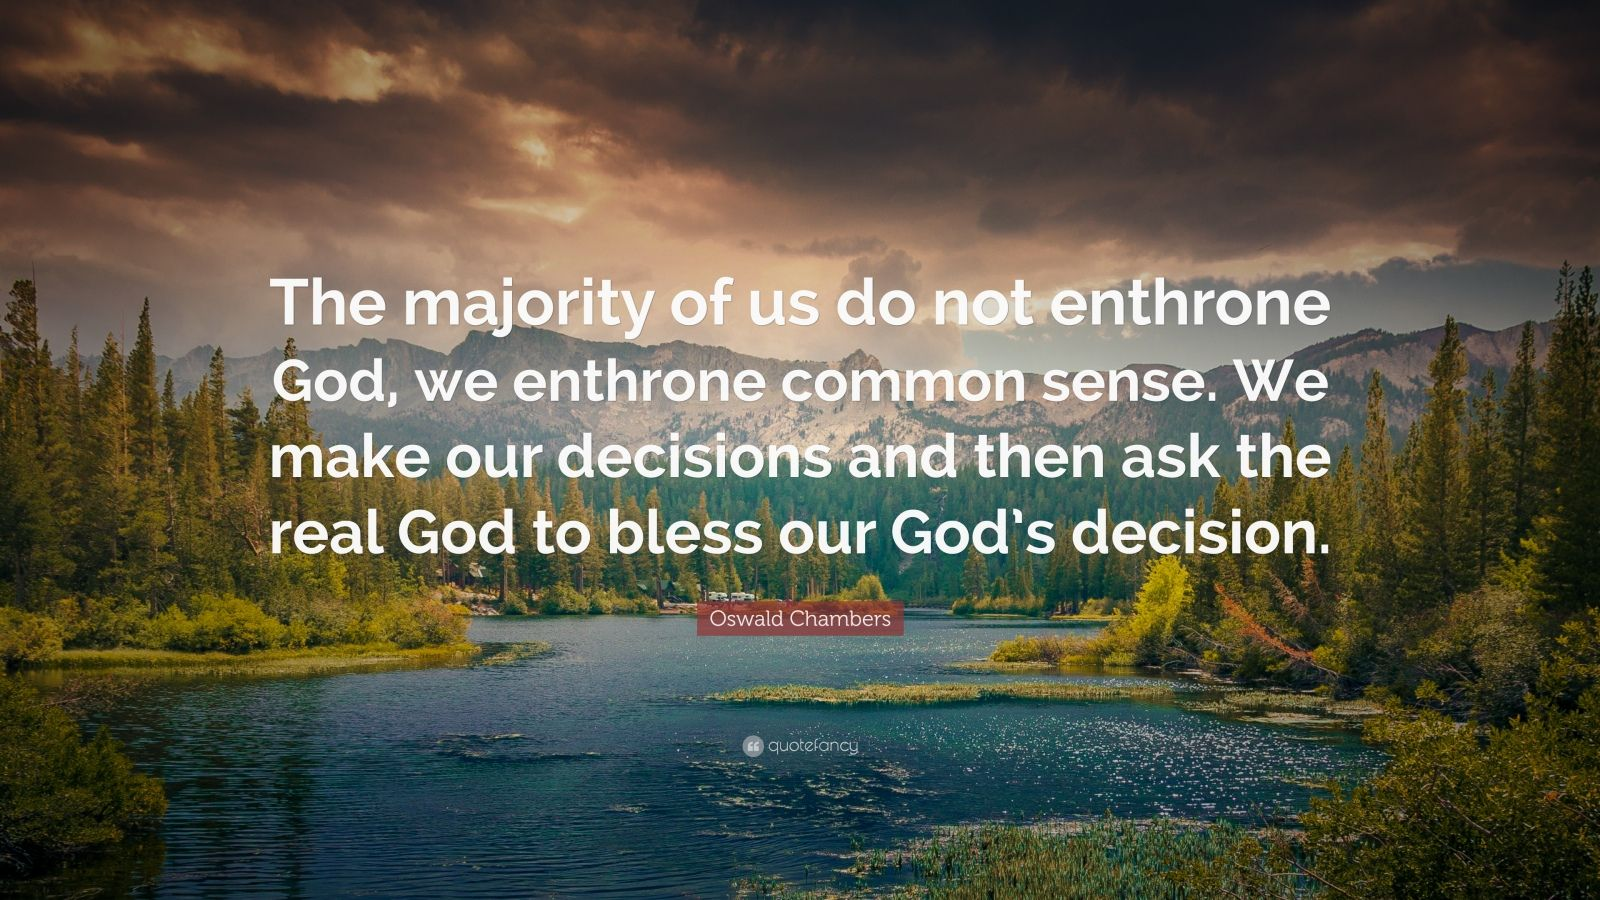 """Oswald Chambers Quote: """"The majority of us do not enthrone God, we enthrone common sense. We make our decisions and then ask the real God to bless our God's decision."""""""